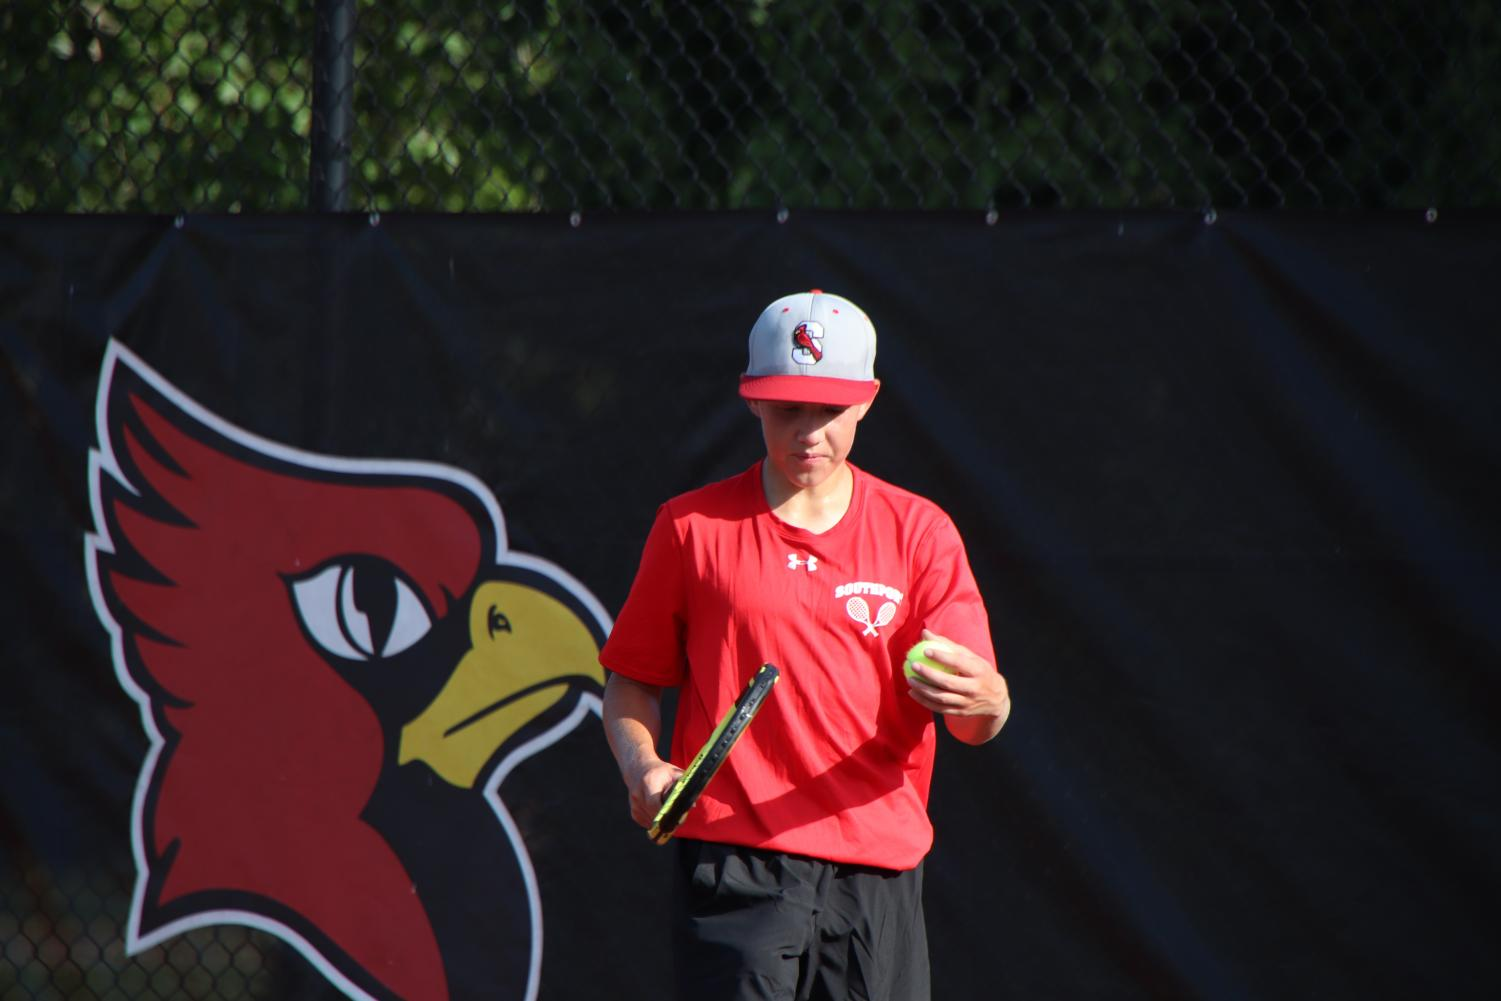 Sophomore+Micah+Fishel+gets+ready+to+serve+the+ball+during+his+tennis+match+on+Aug.+19.+Fishel+was+the+only+one+to+when+his+match.+The+final+score+against+Decatur+was+1-4.%0A